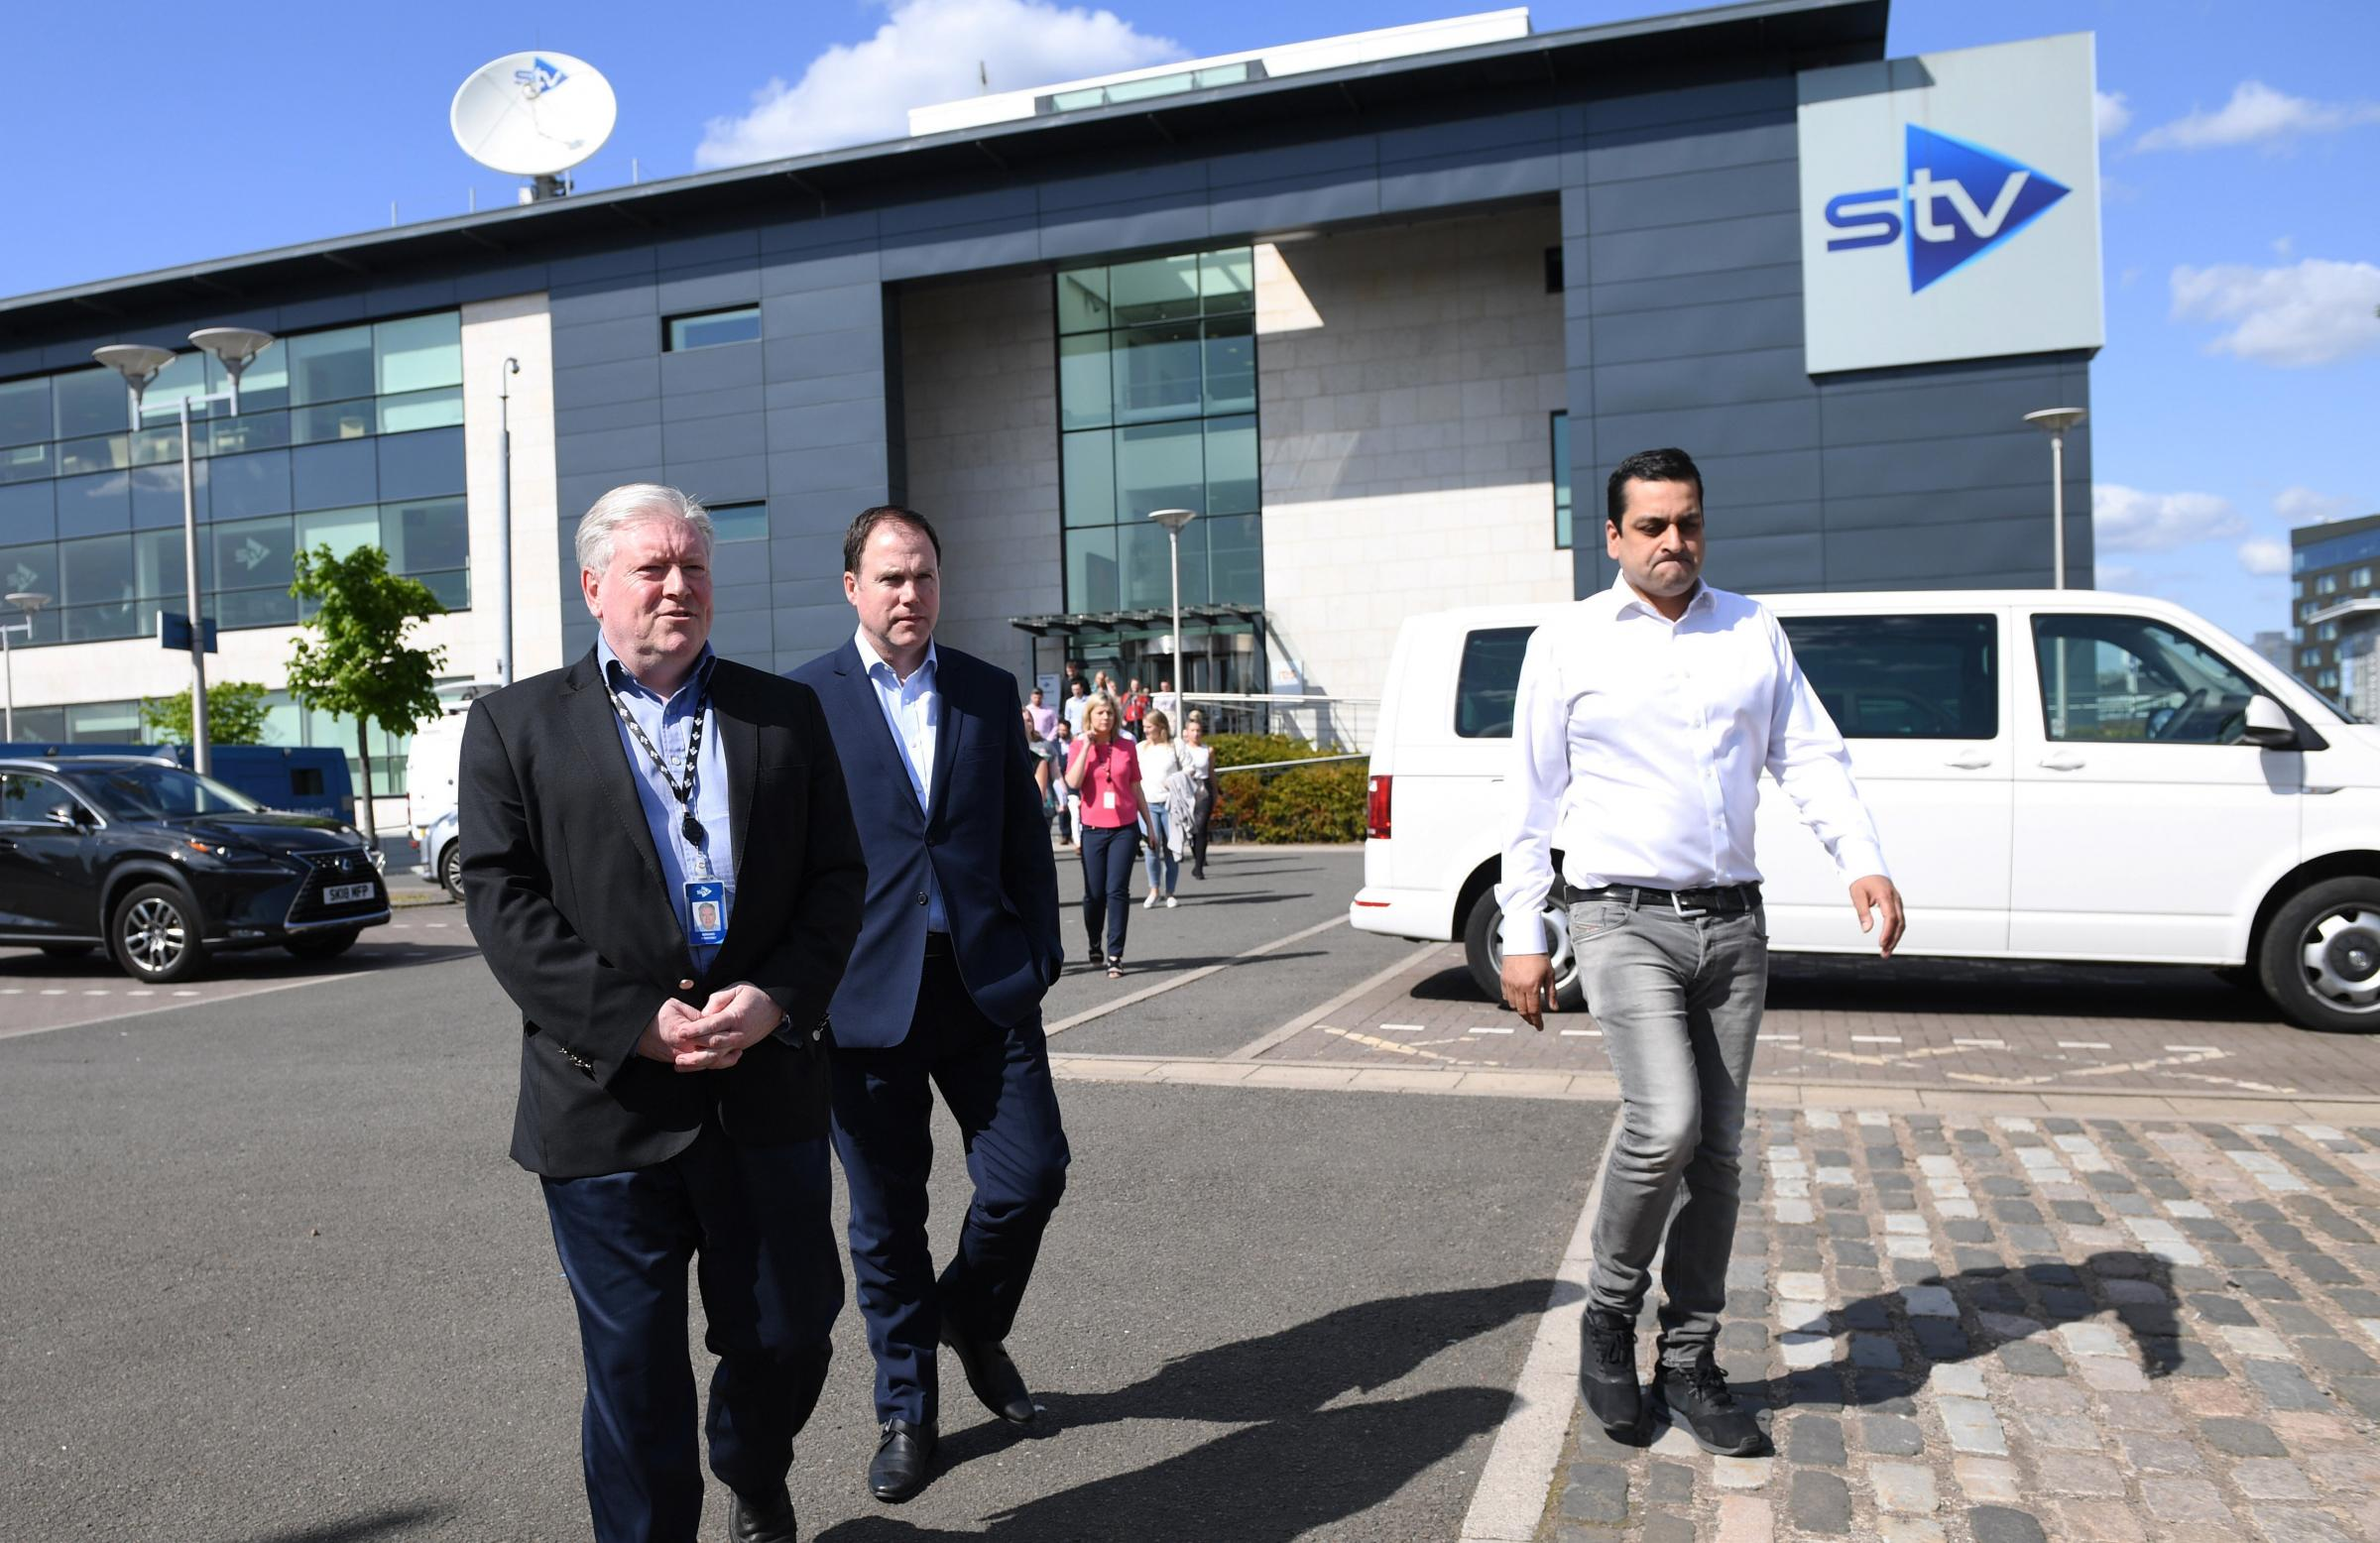 Staff at STV including, from left, Bernard Ponsonby, John MacKay and Raman Bhardwaj walked out after it was announced dozens of jobs would be axed